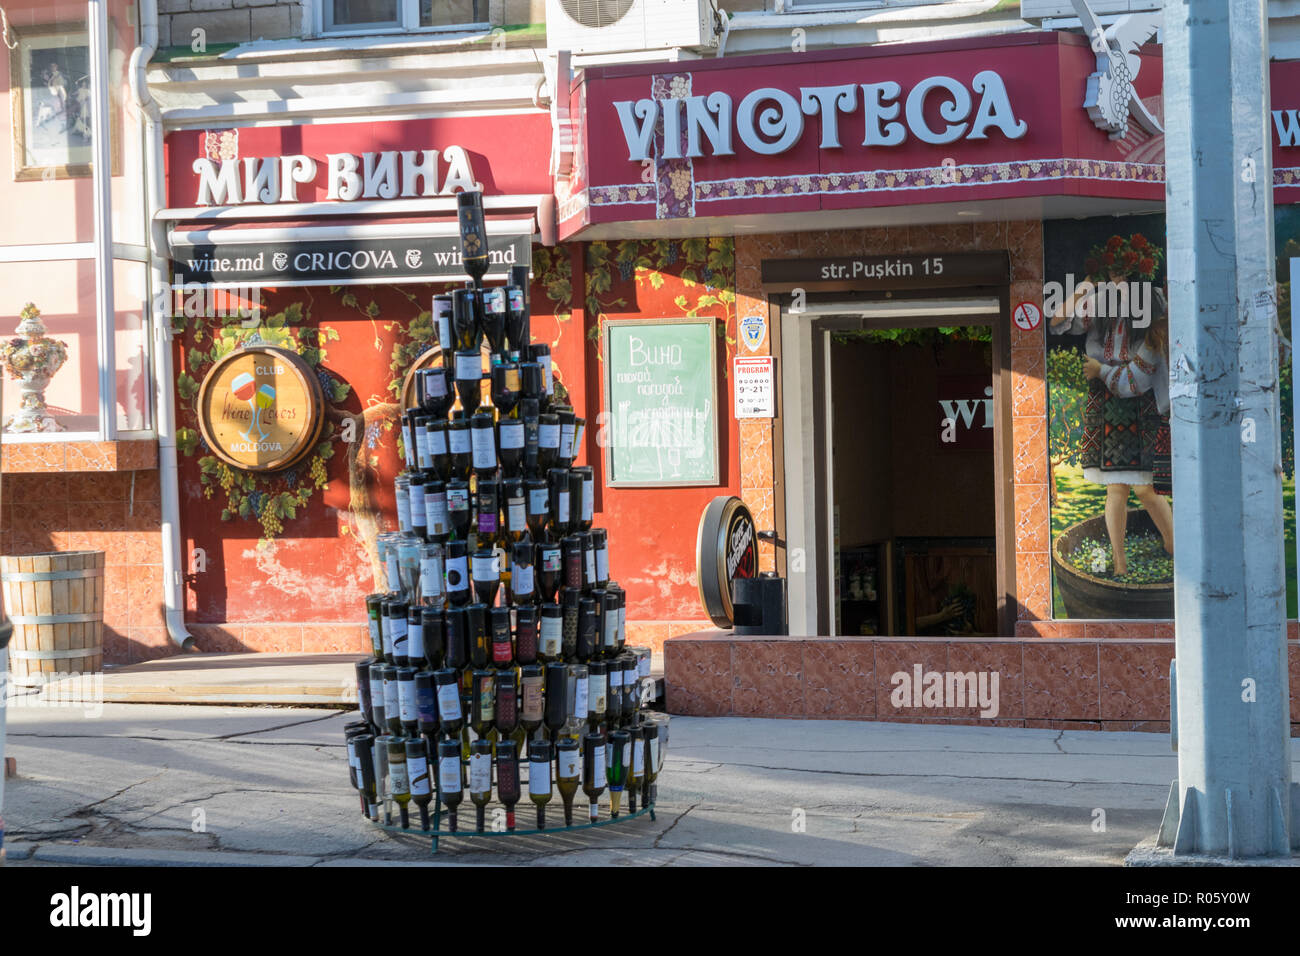 CHISINAU, MOLDOVA - 31 DECEMBER, 2017: A Christmass tree made out of wine bootles in font of a wine store in Chisinau, Moldova. - Stock Image